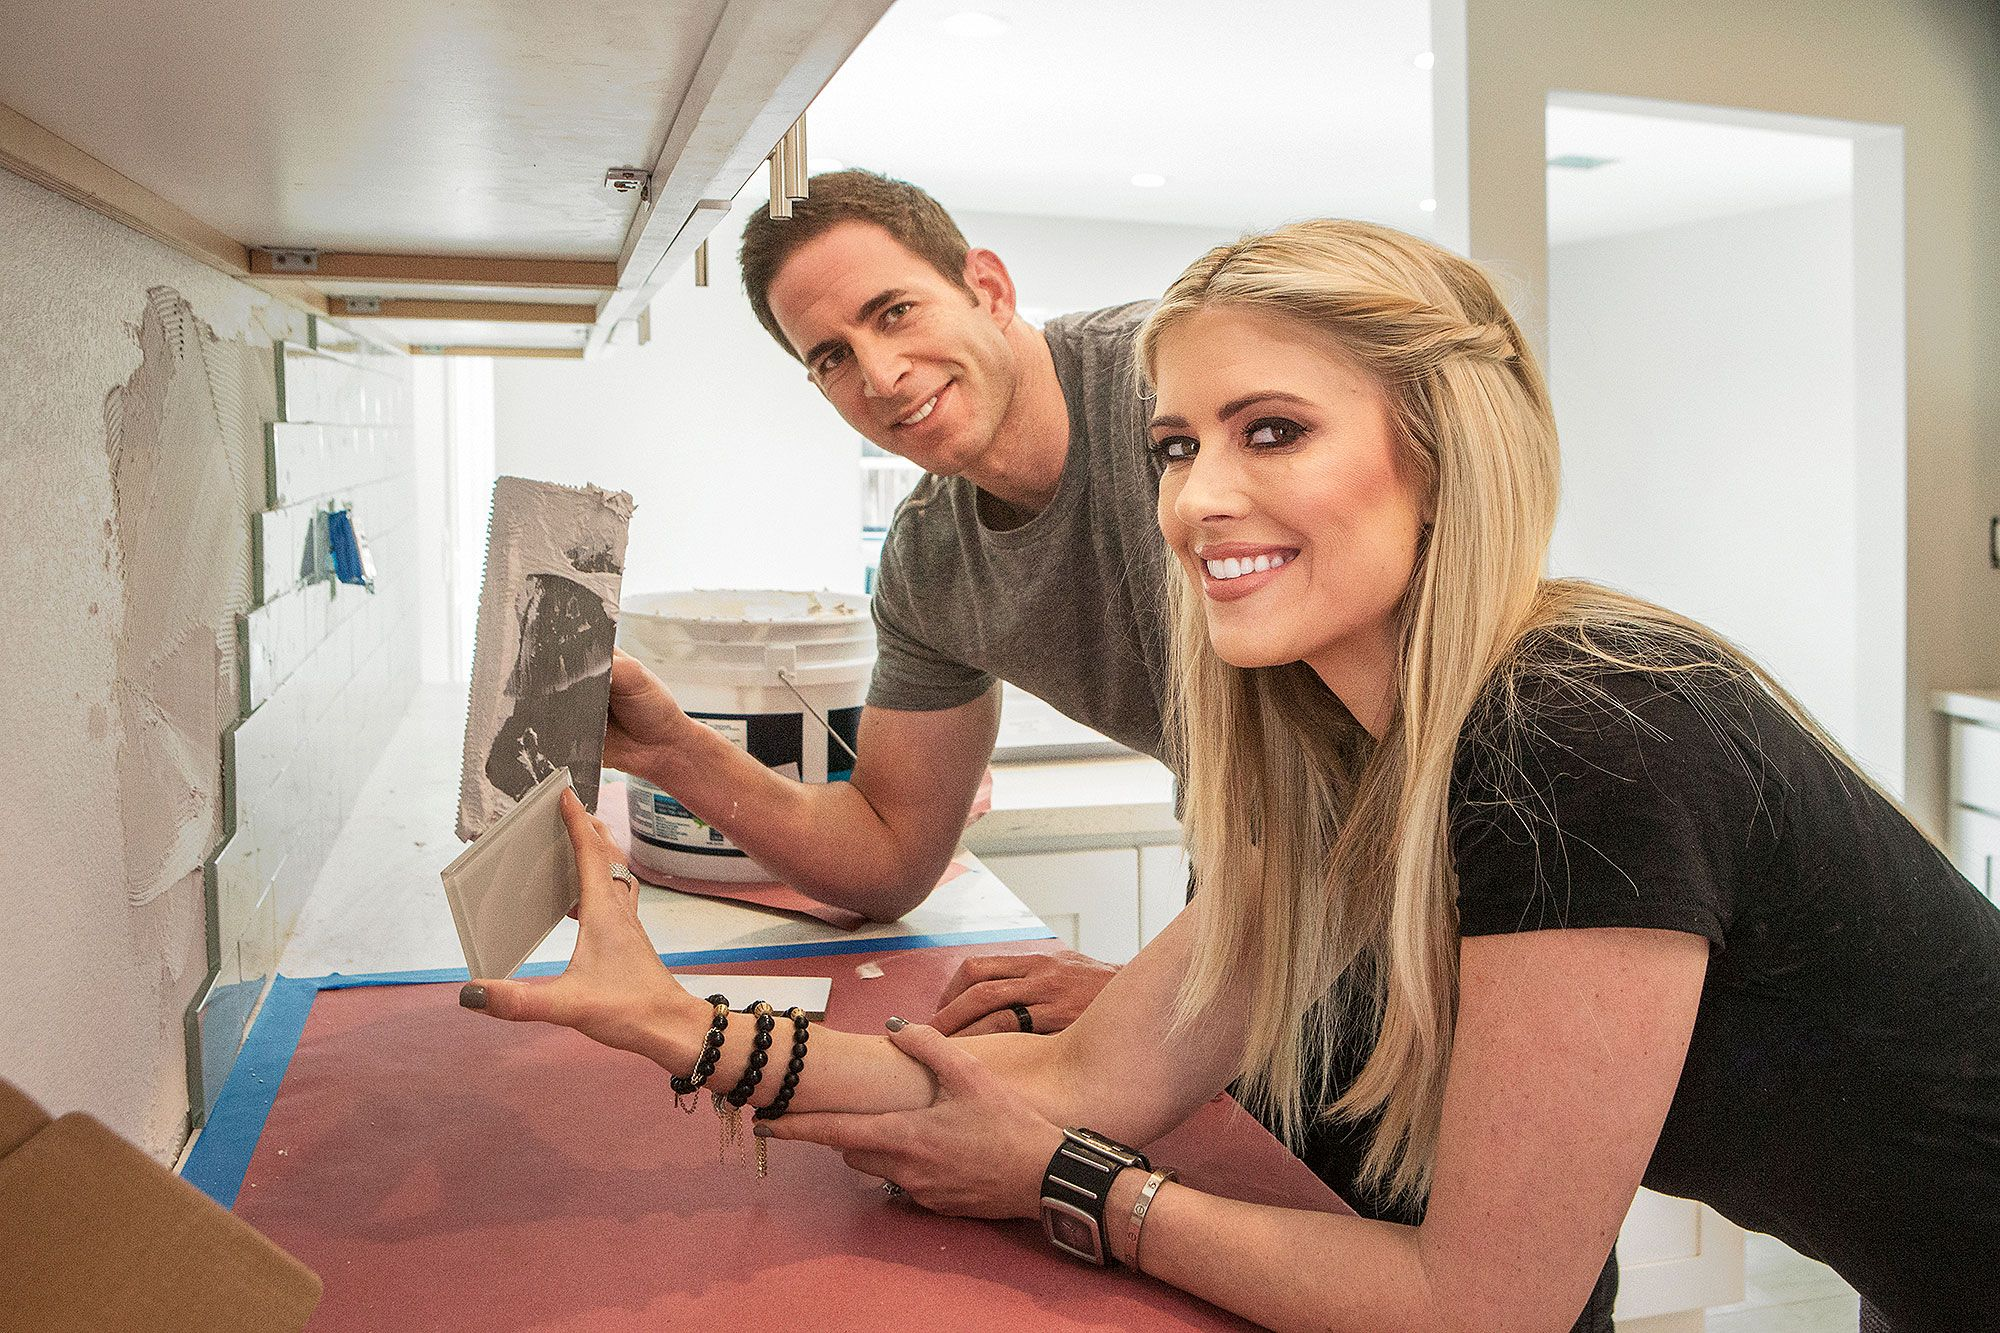 Christina Anstead And Tarek El Moussa To Film 9th Season Of Flip Or Flop Fame10